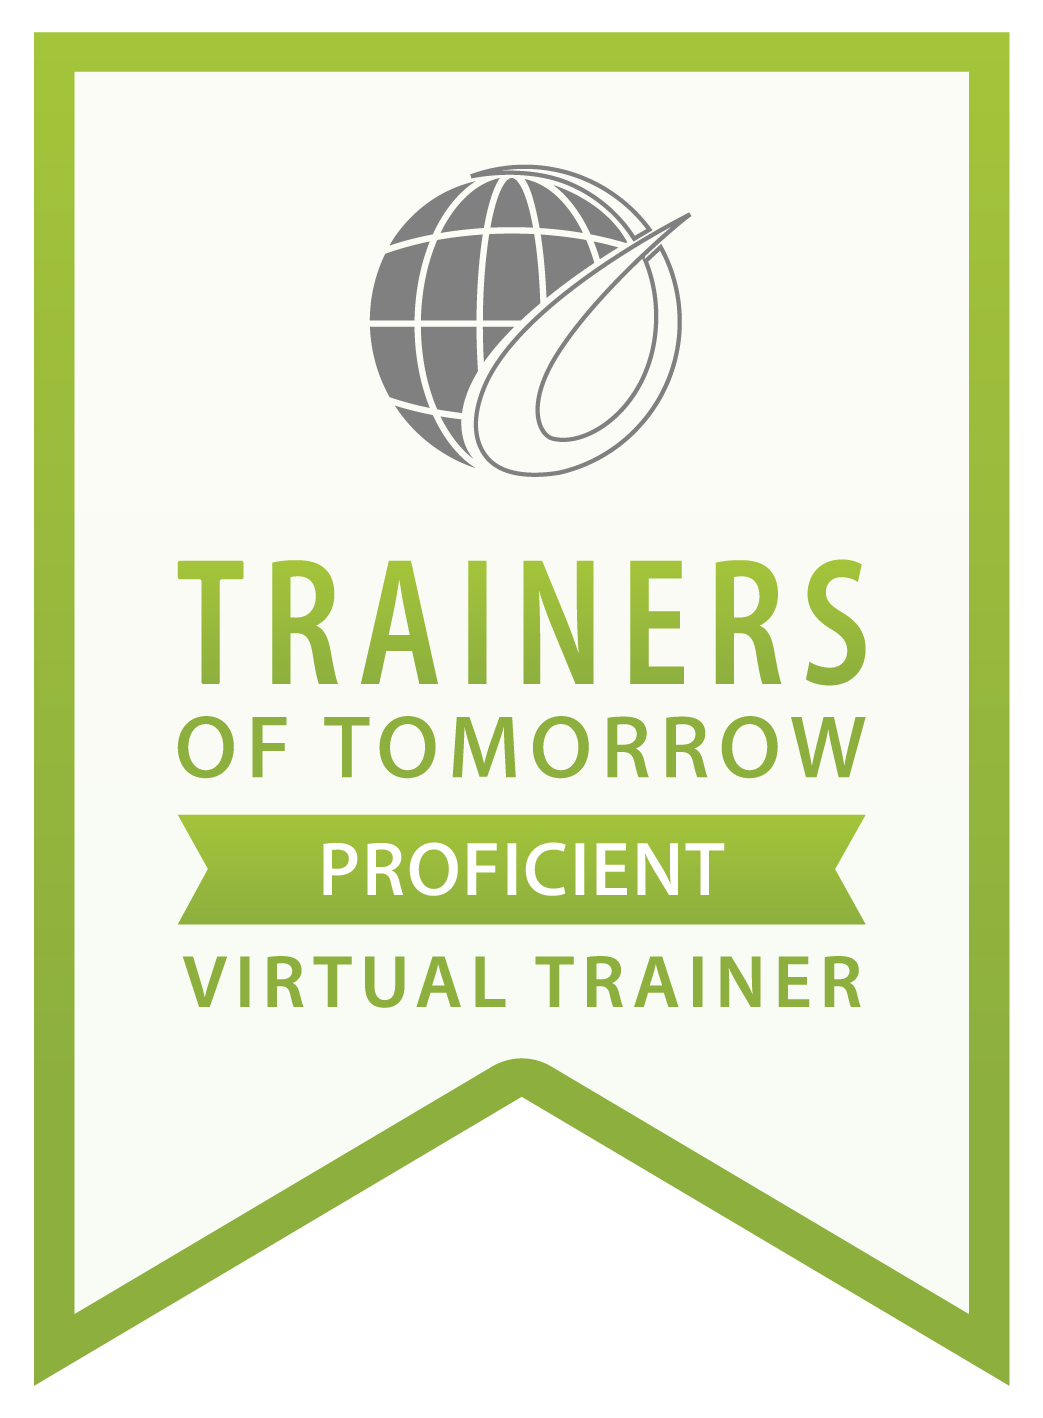 Trainers of Tomorrow Proficient Virtual Trainer Badge